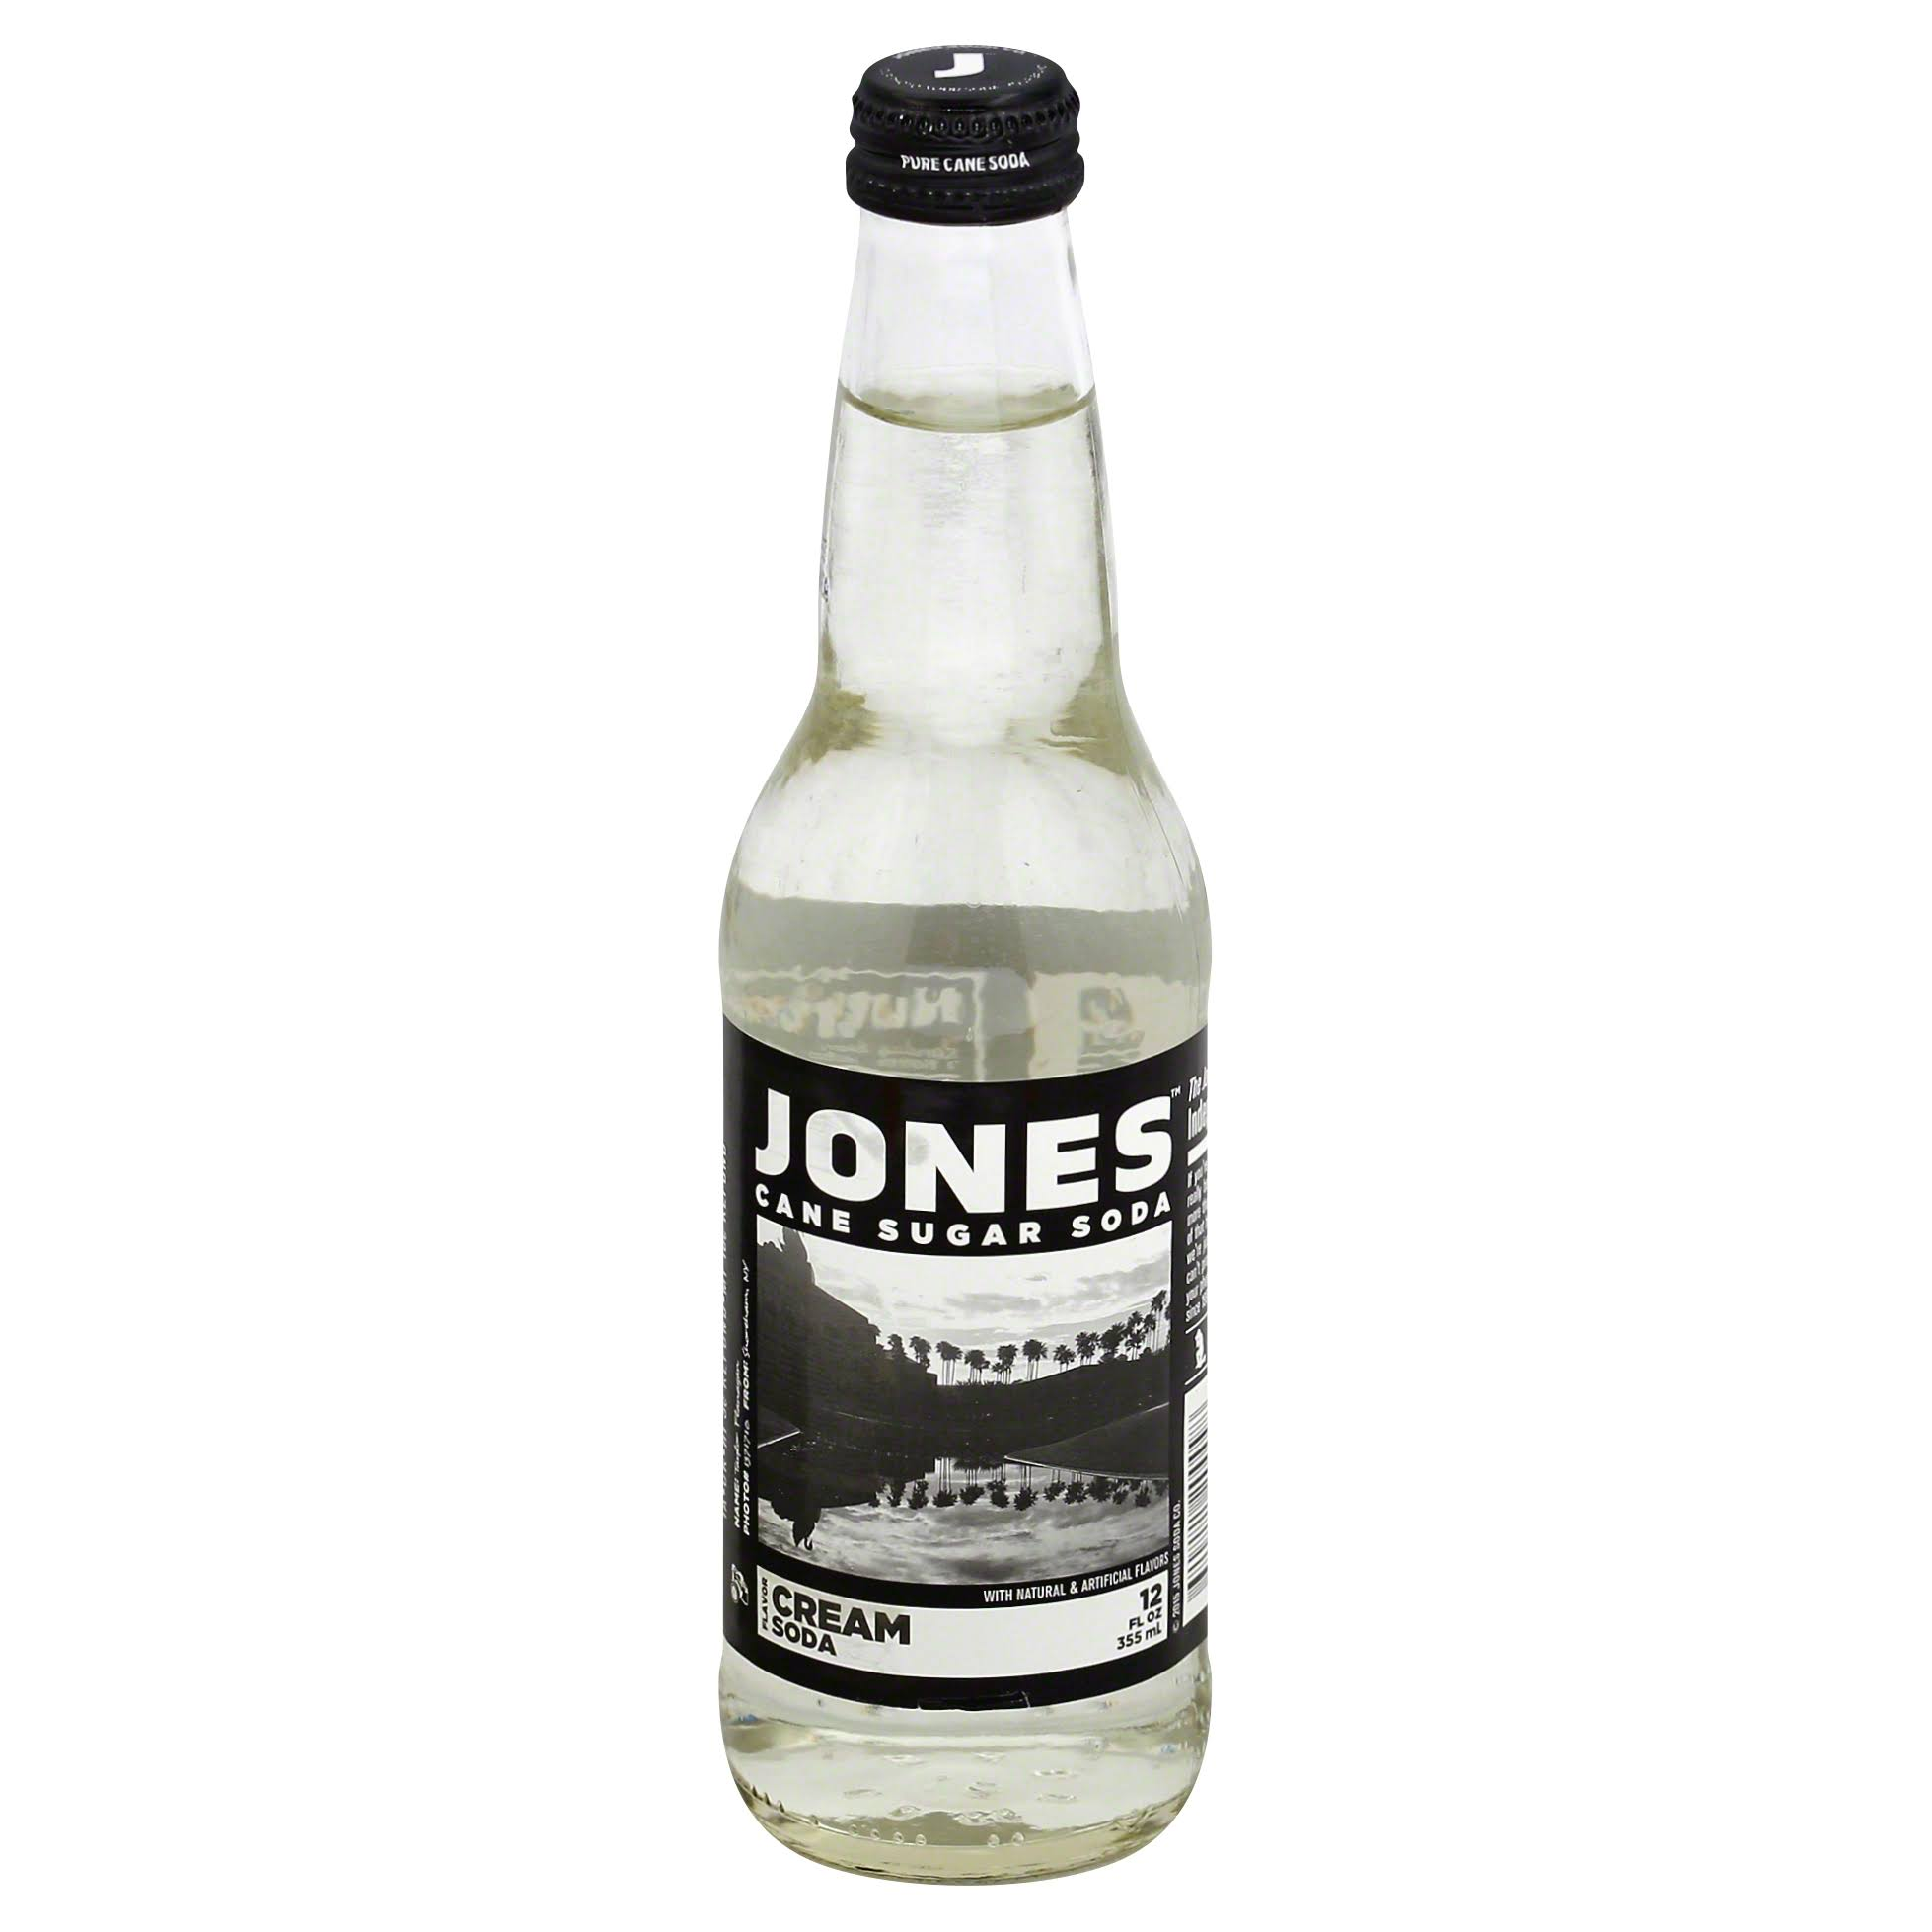 Jones Soda, Cane Sugar, Cream Flavor - 12 fl oz